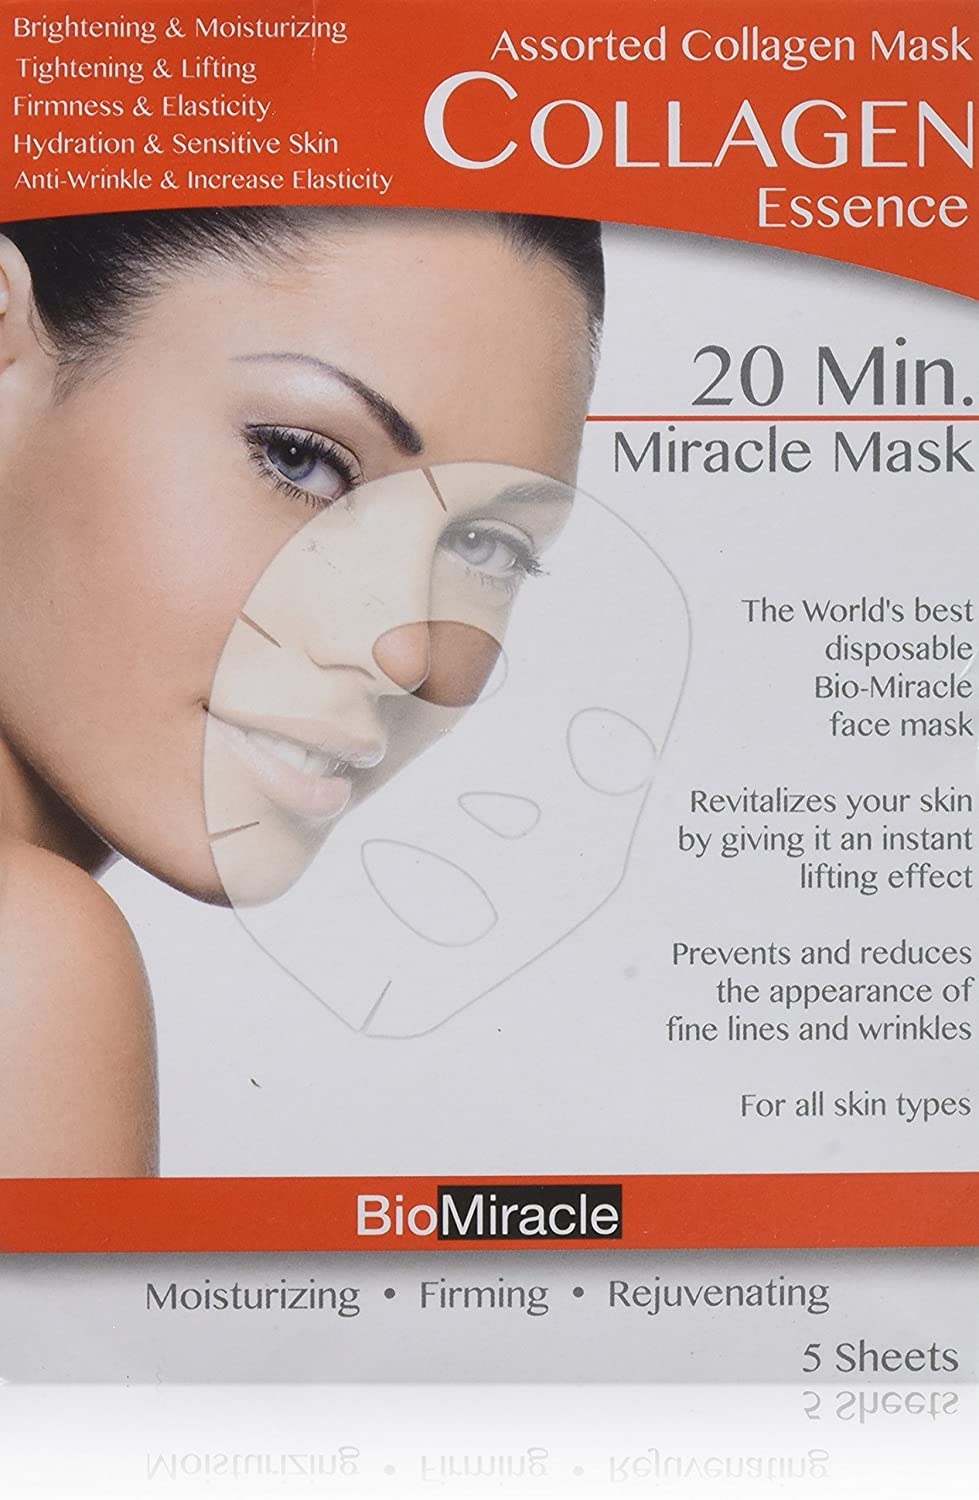 Miraculous means for giving beauty to lips